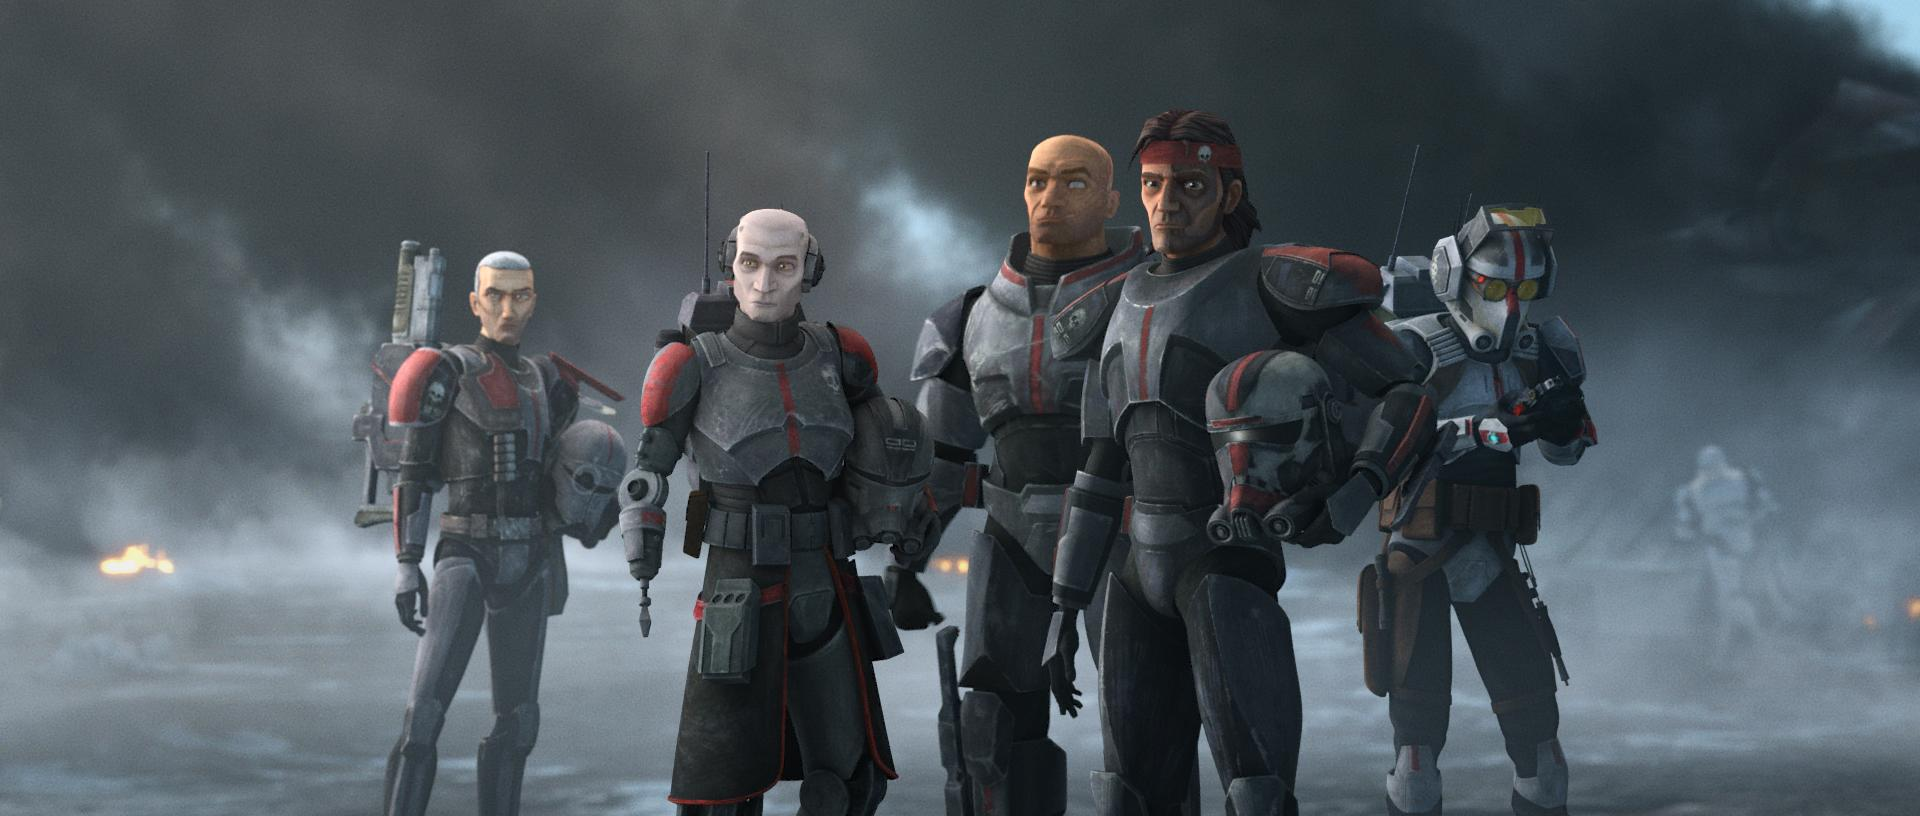 The cast of the Bad Batch: Crosshair, Echo, Wrecker, Hunter and Tech